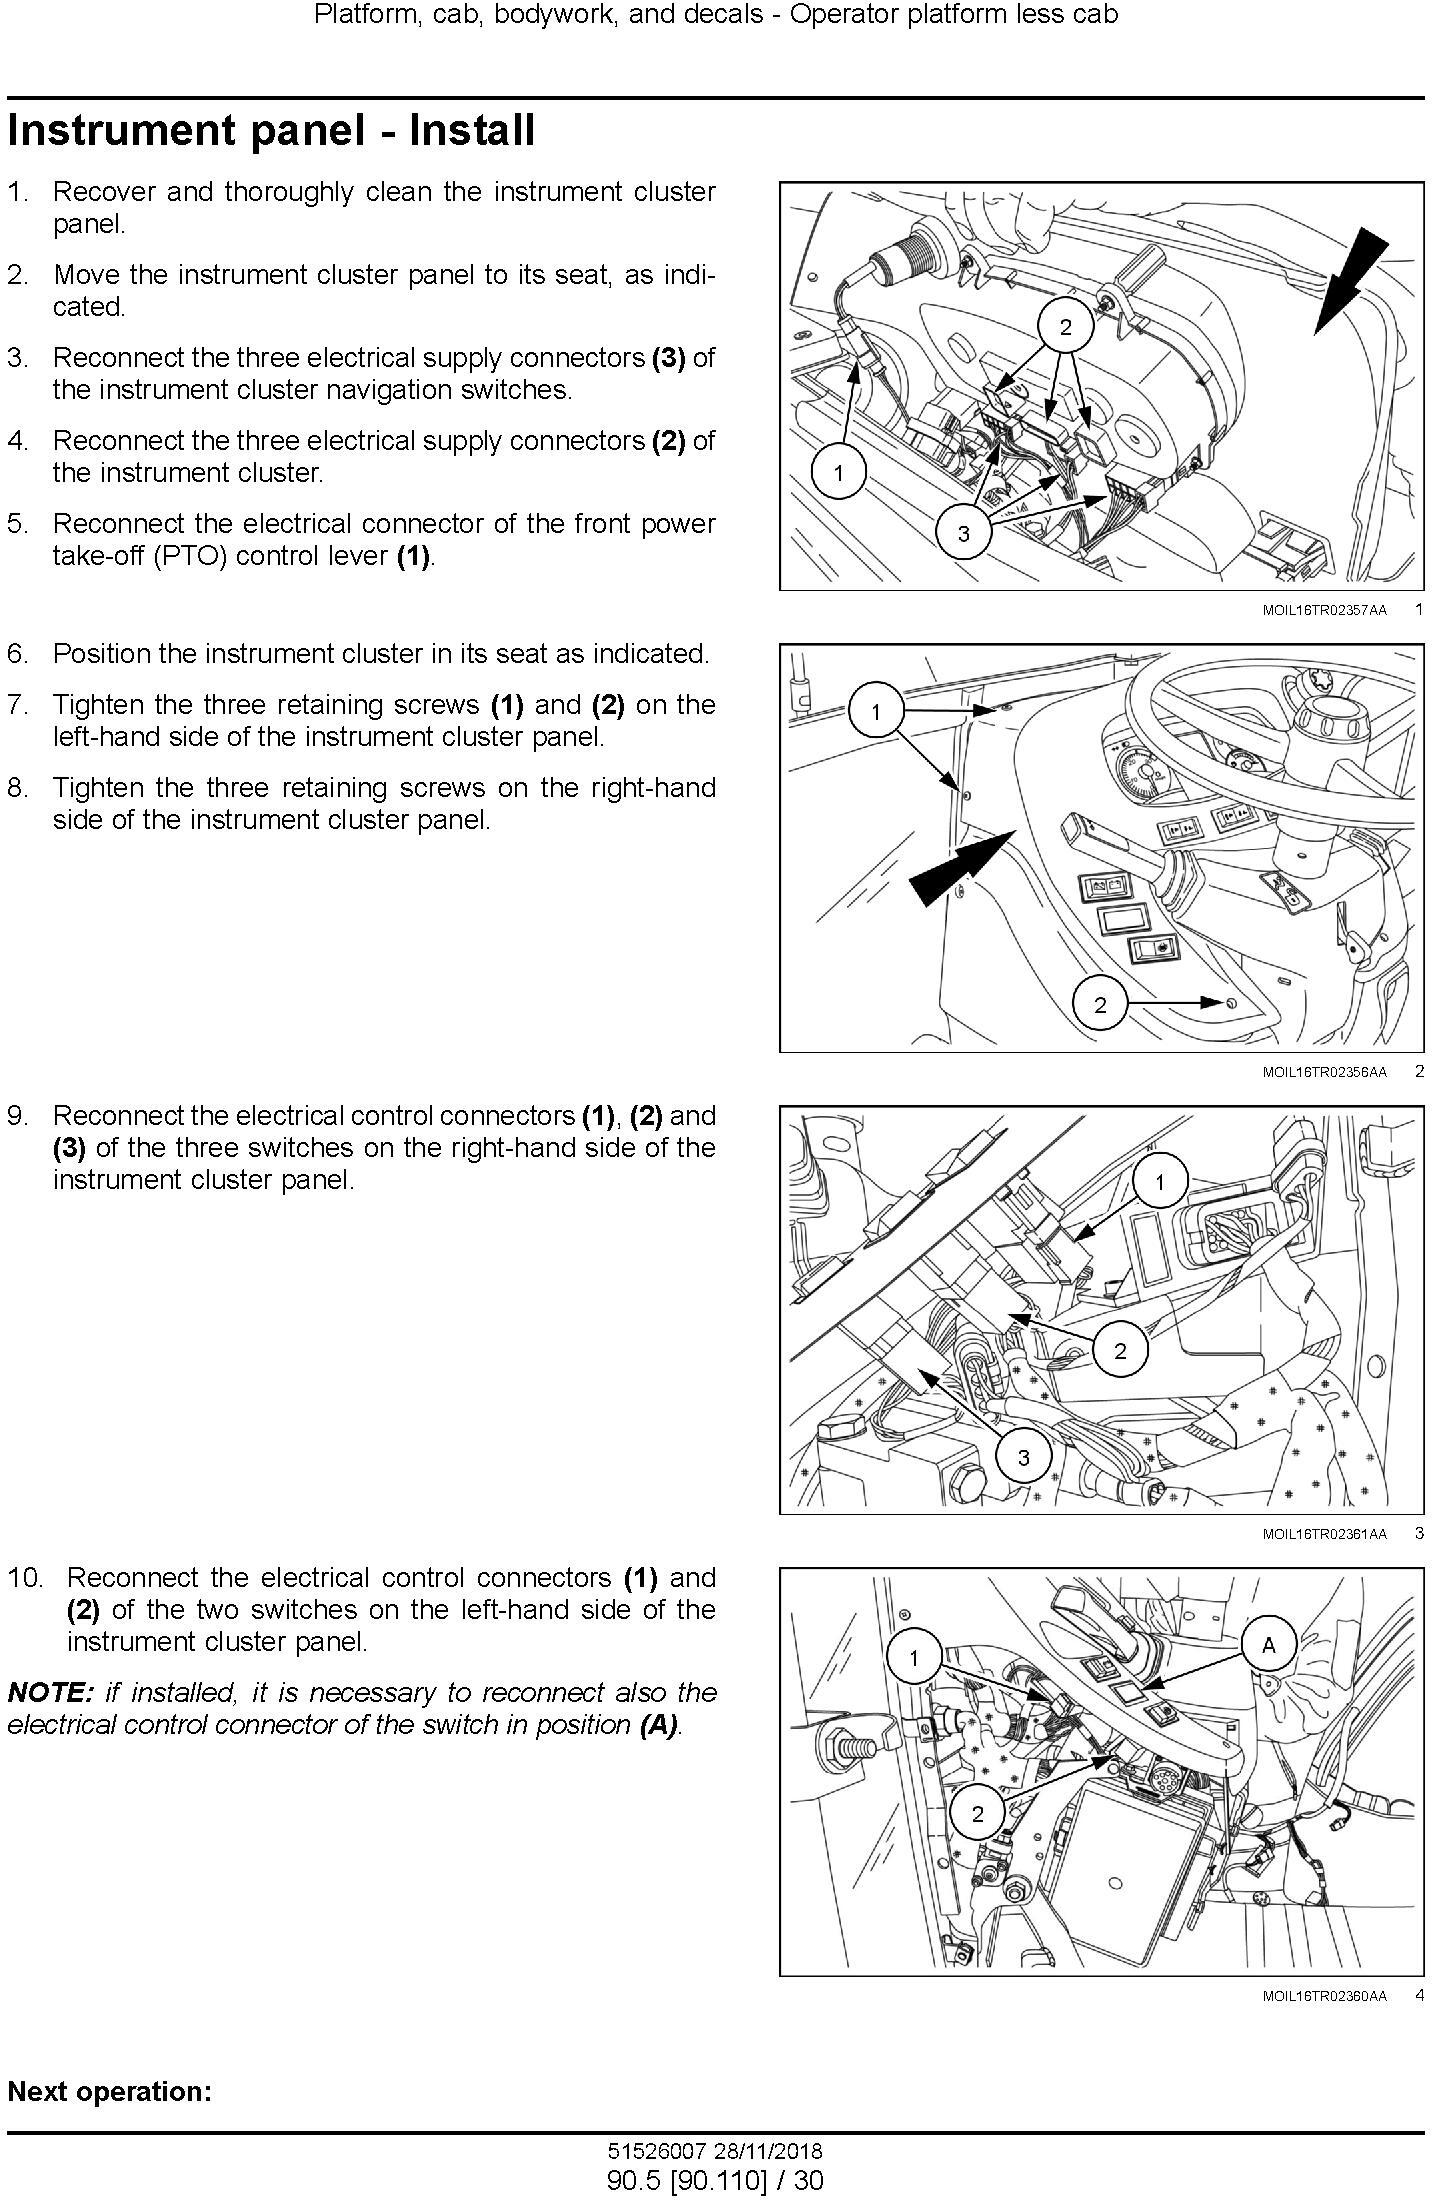 New Holland T4.80V/N, T4.90V/N, T4.100V/N, T4.110V/N Tractor Tier 4A and StageIIIB Service Manual - 3